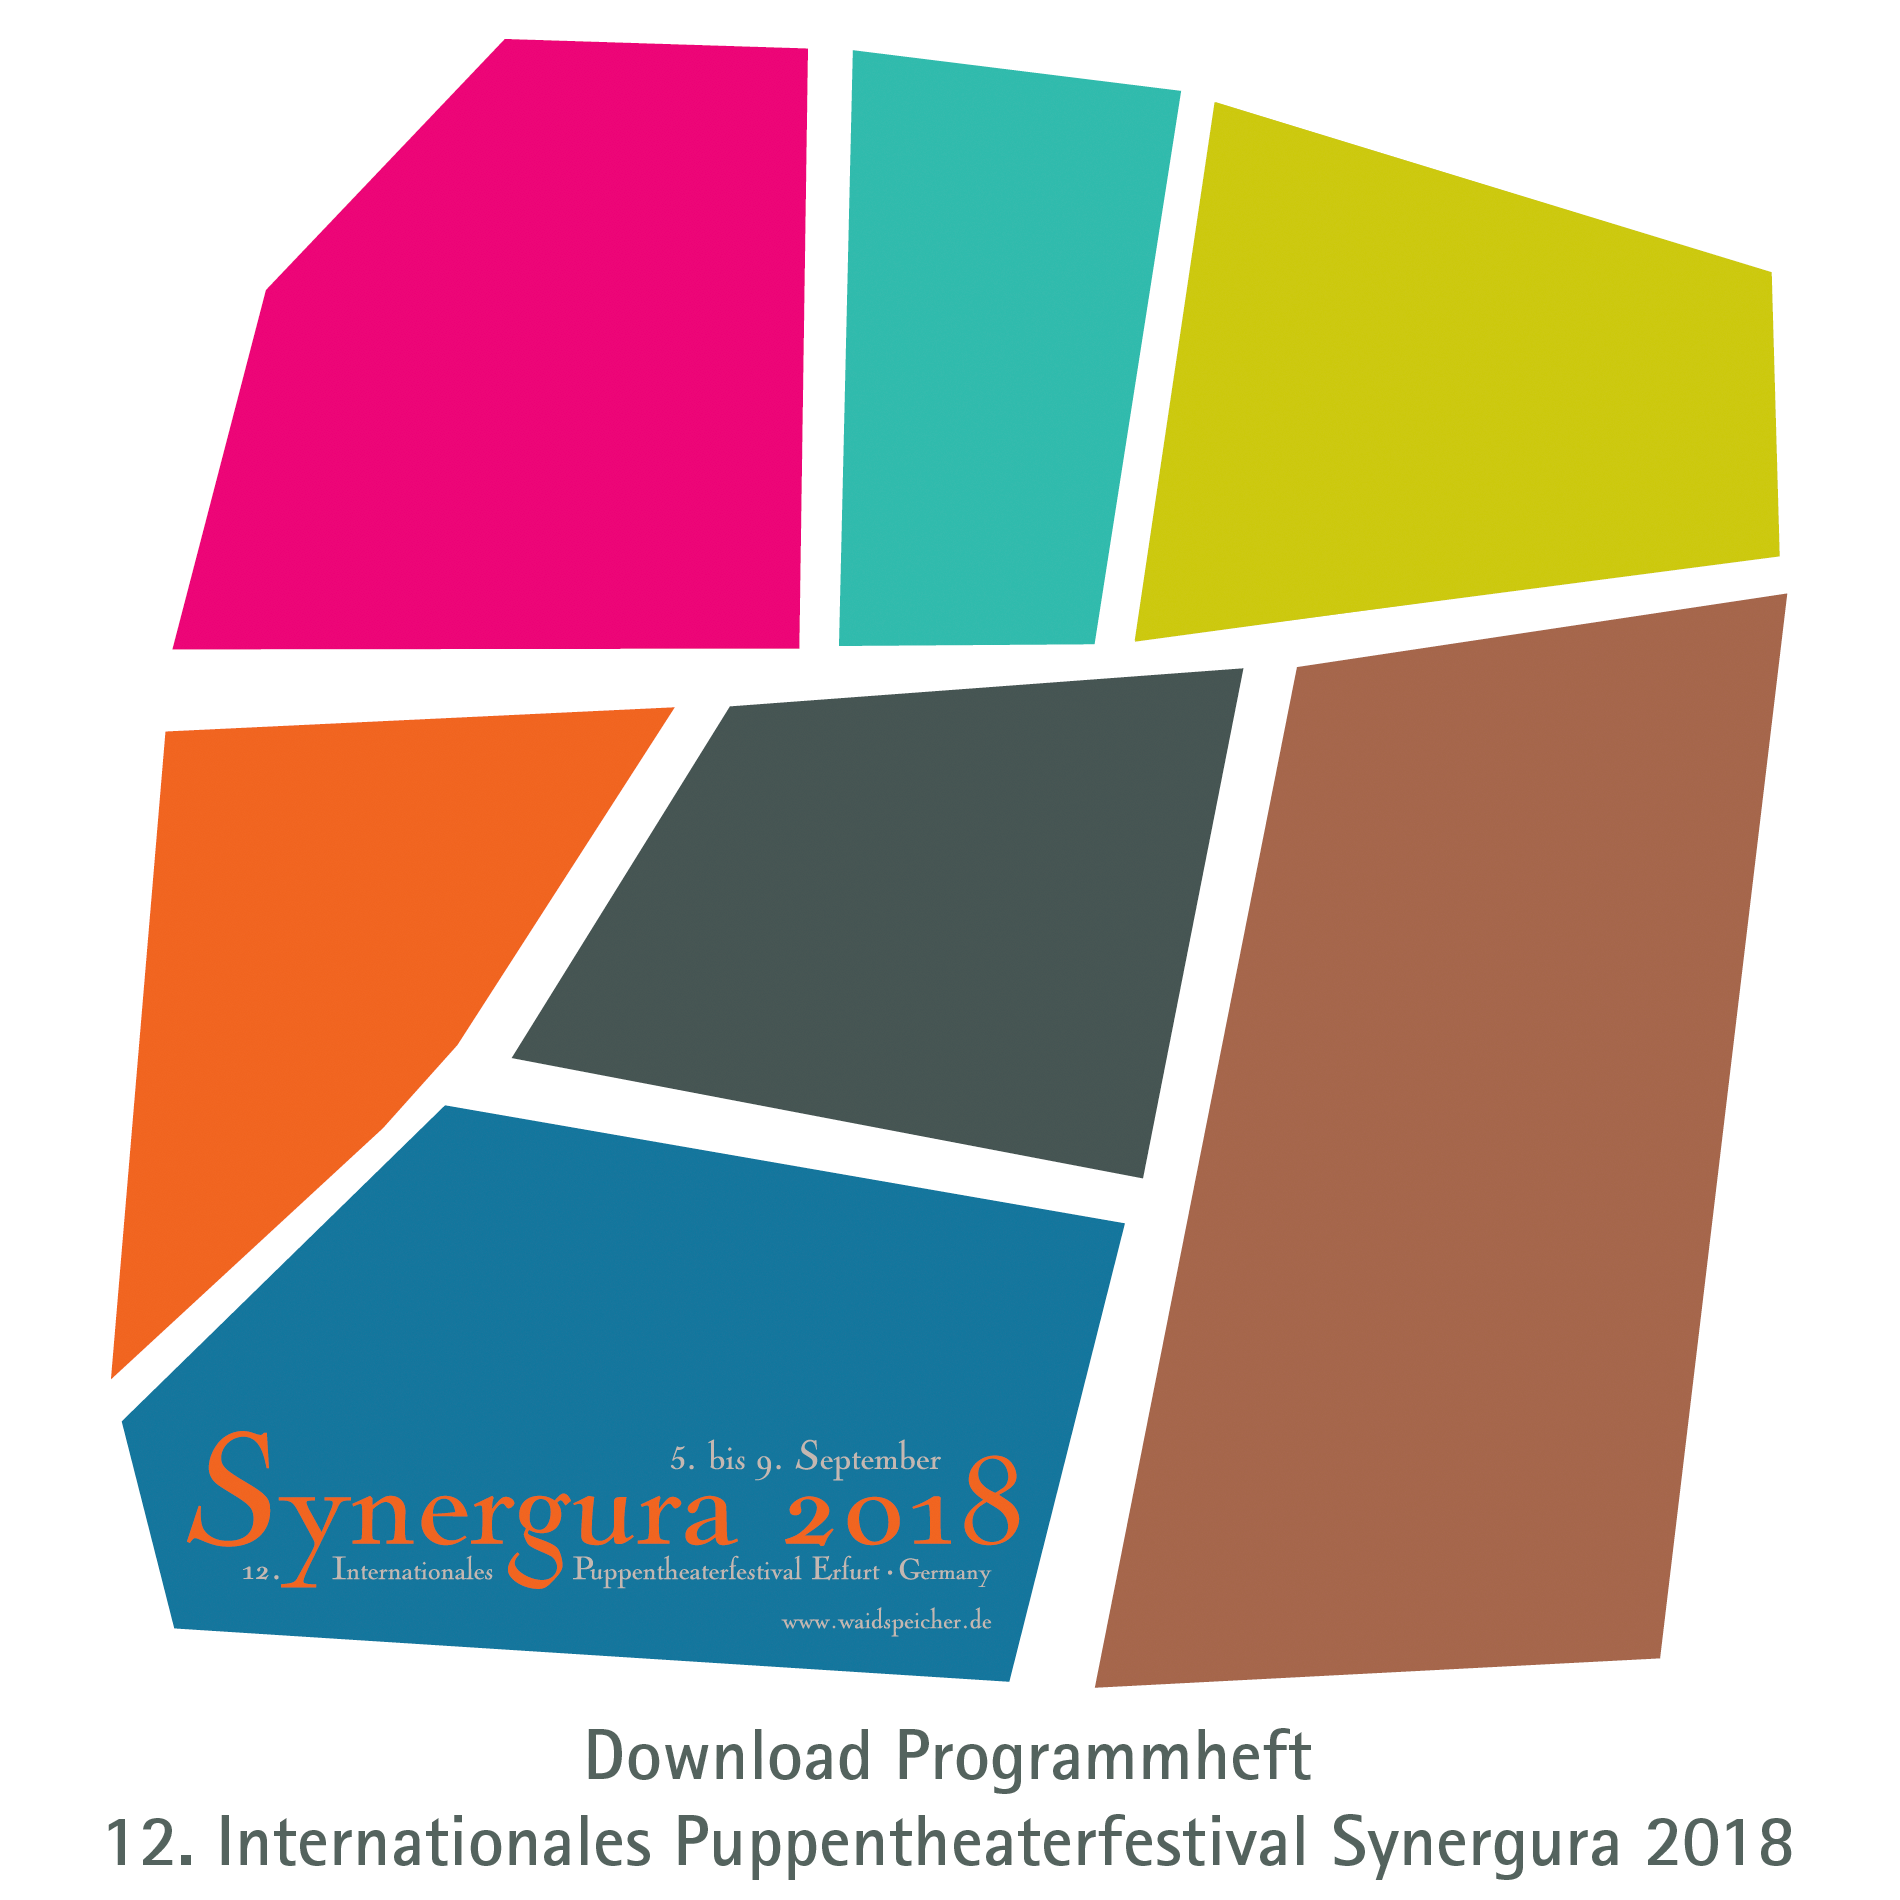 Download Programmheft Synergura 2018